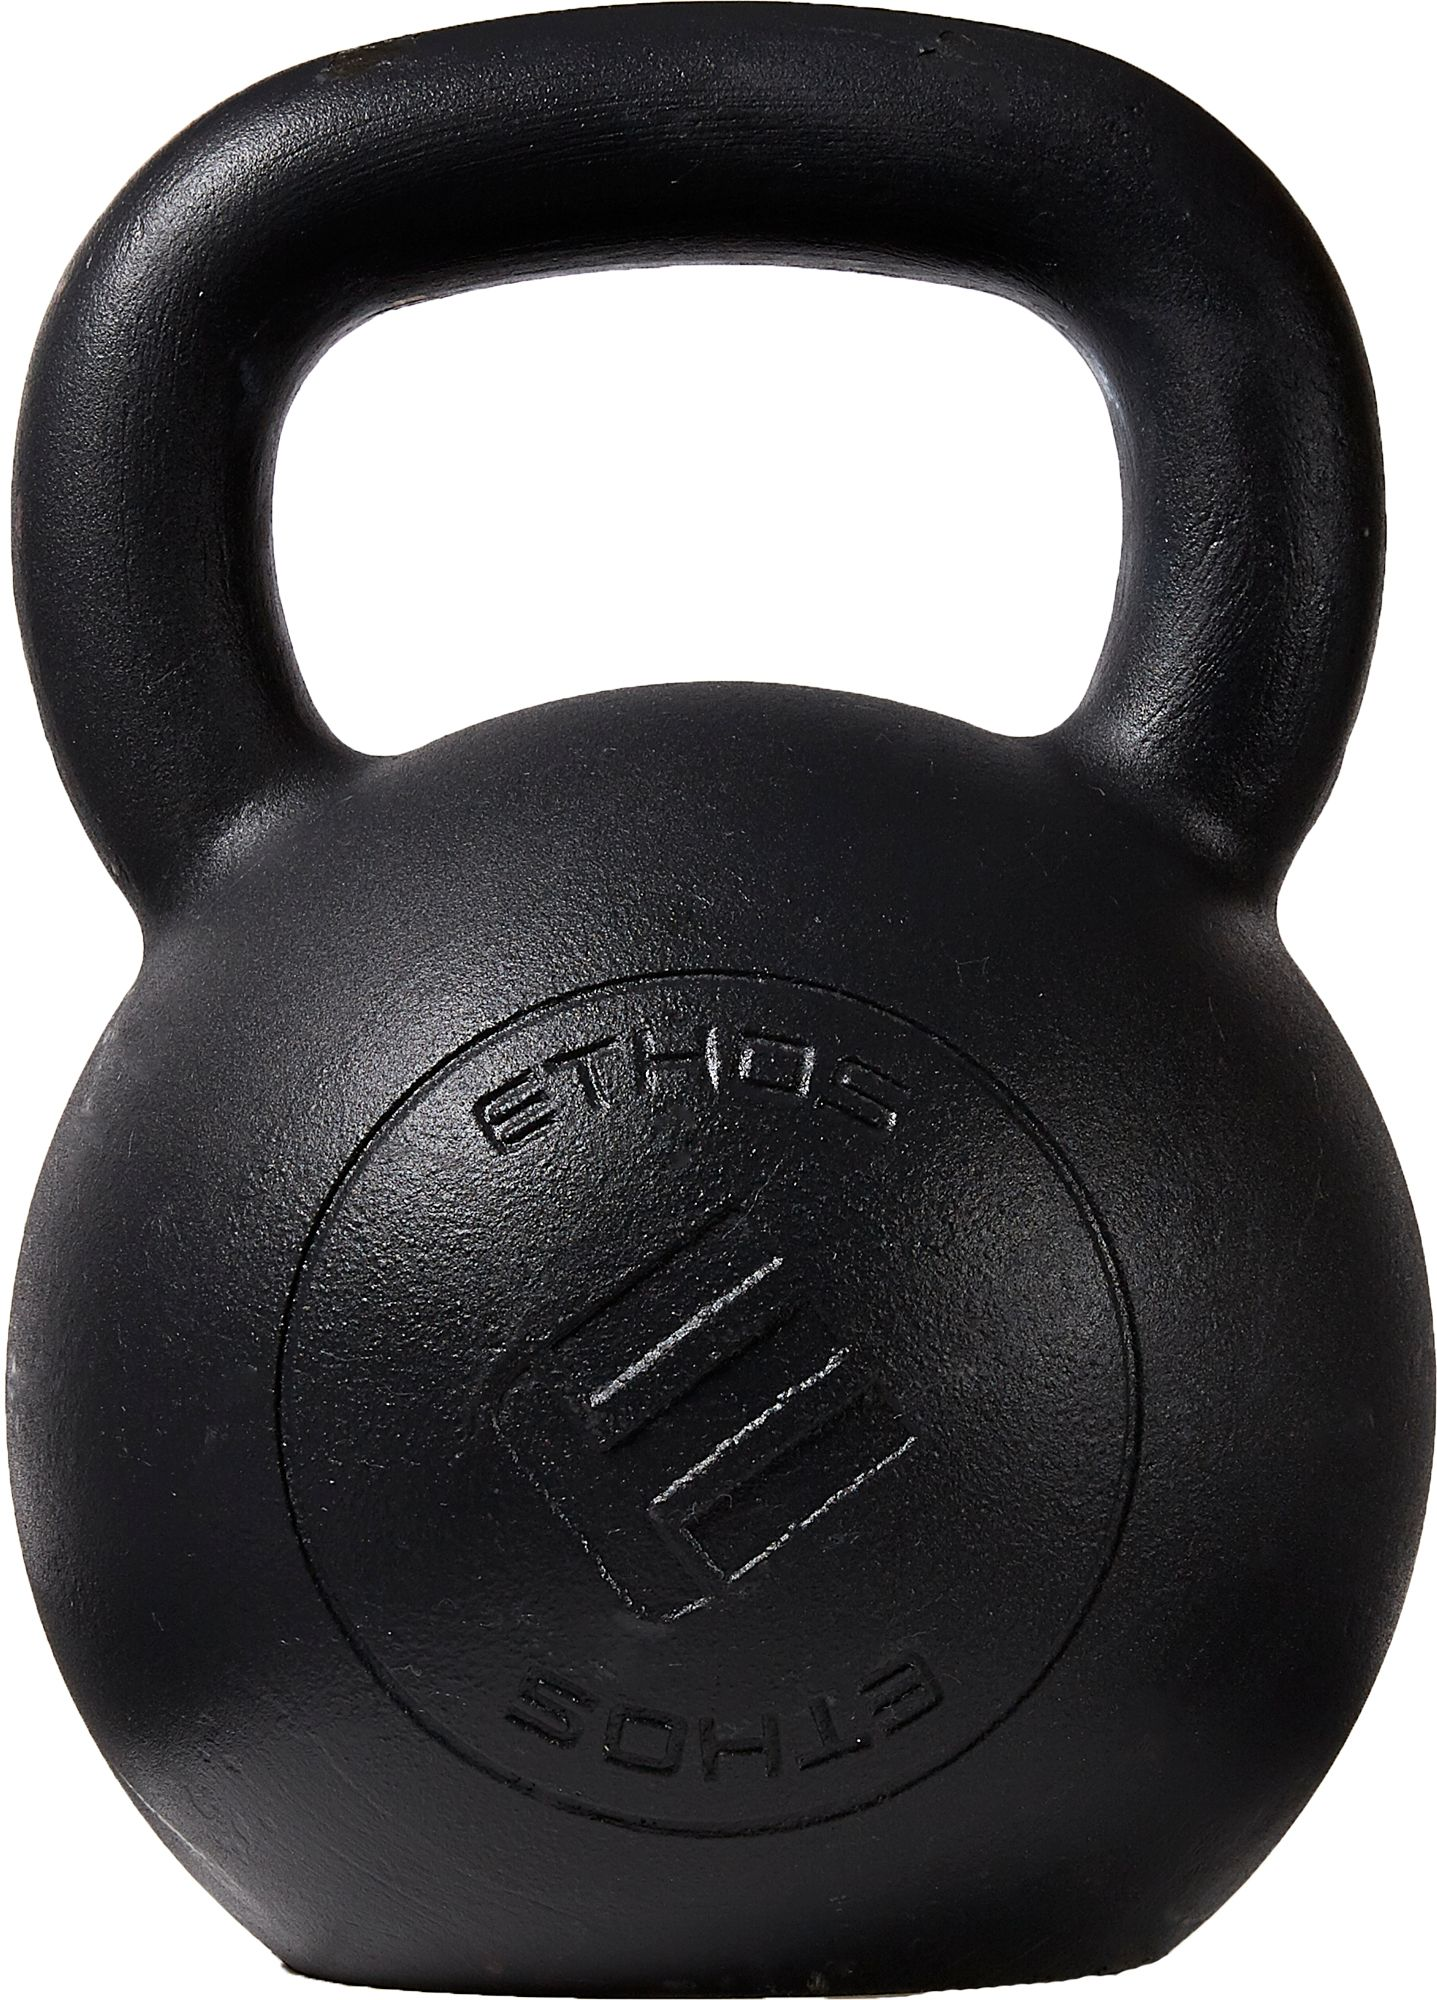 Dicks sporting goods kettleballs